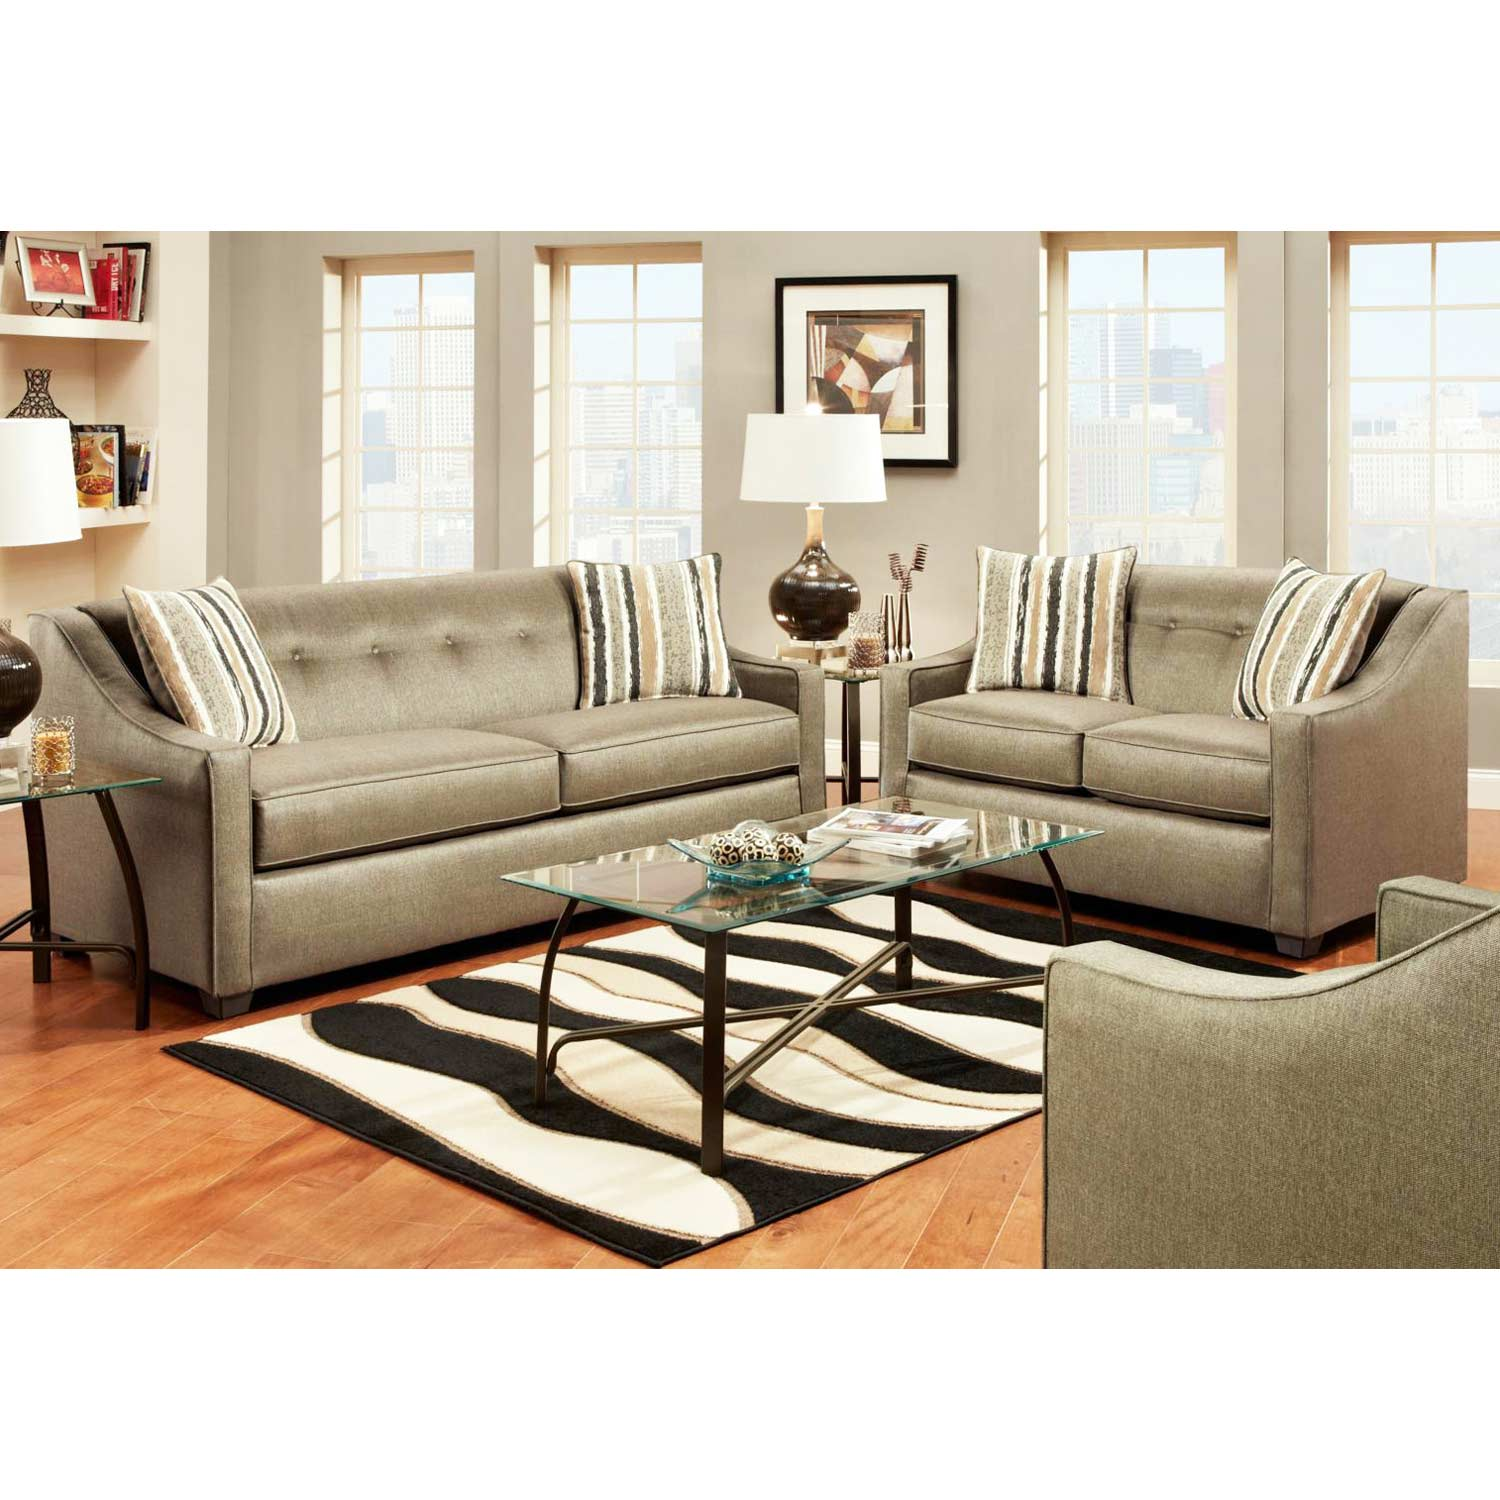 Brittany Sloped Arm Loveseat - Buttons, Stoked Pewter Fabric - CHF-475440-L-SP